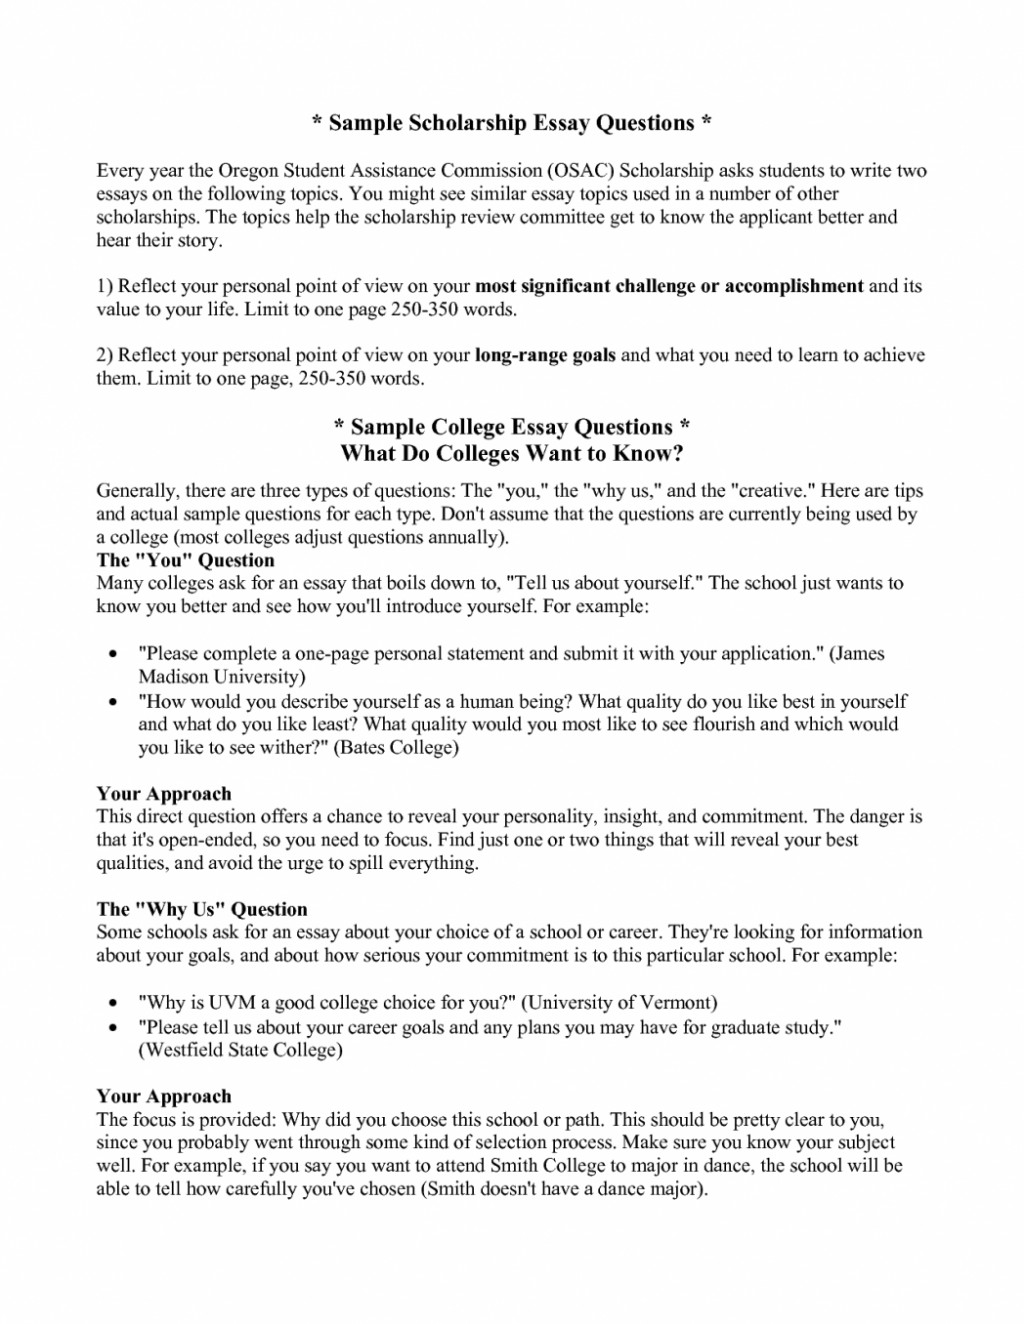 021 College Scholarships Essays Goal Blockety Co Winning Scholarship Application Format About Yourself Question 1048x1356 Stupendous Essay Examples Pdf Large